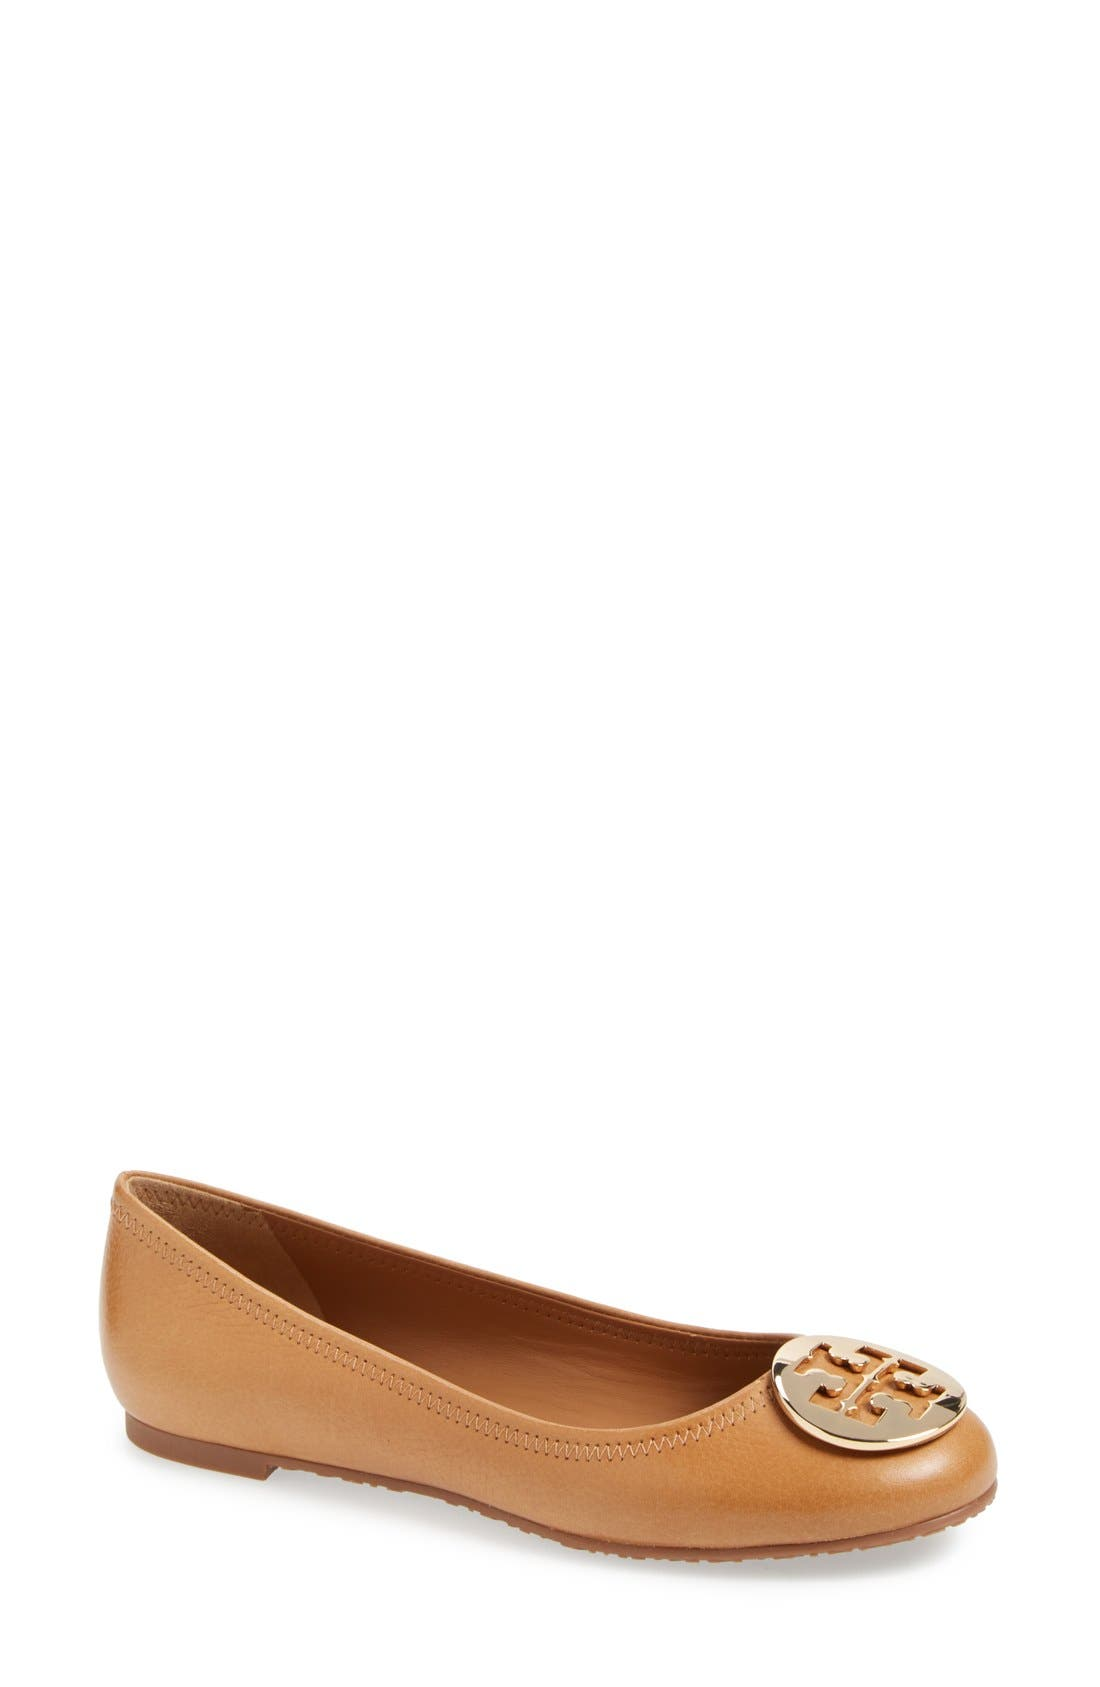 Alternate Image 1 Selected - Tory Burch Reva Ballerina Flat (Women)